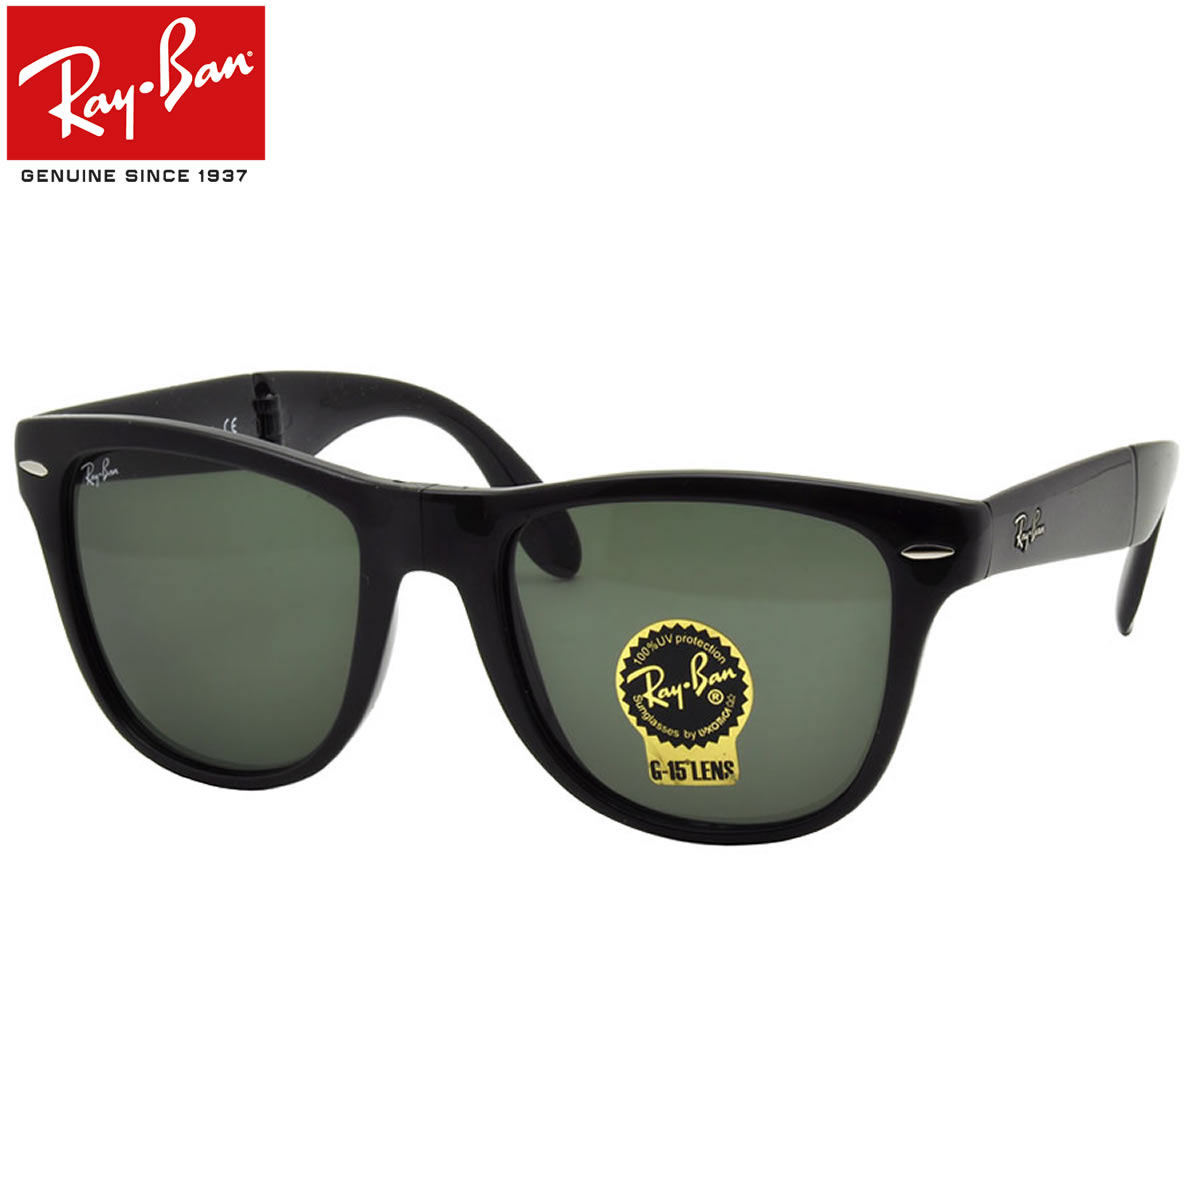 cf053f8bb15c Ray-Ban Sunglasses RB4105 601 54size WAYFARER FOLDING GENUINE NEW rayban  ray ban ...